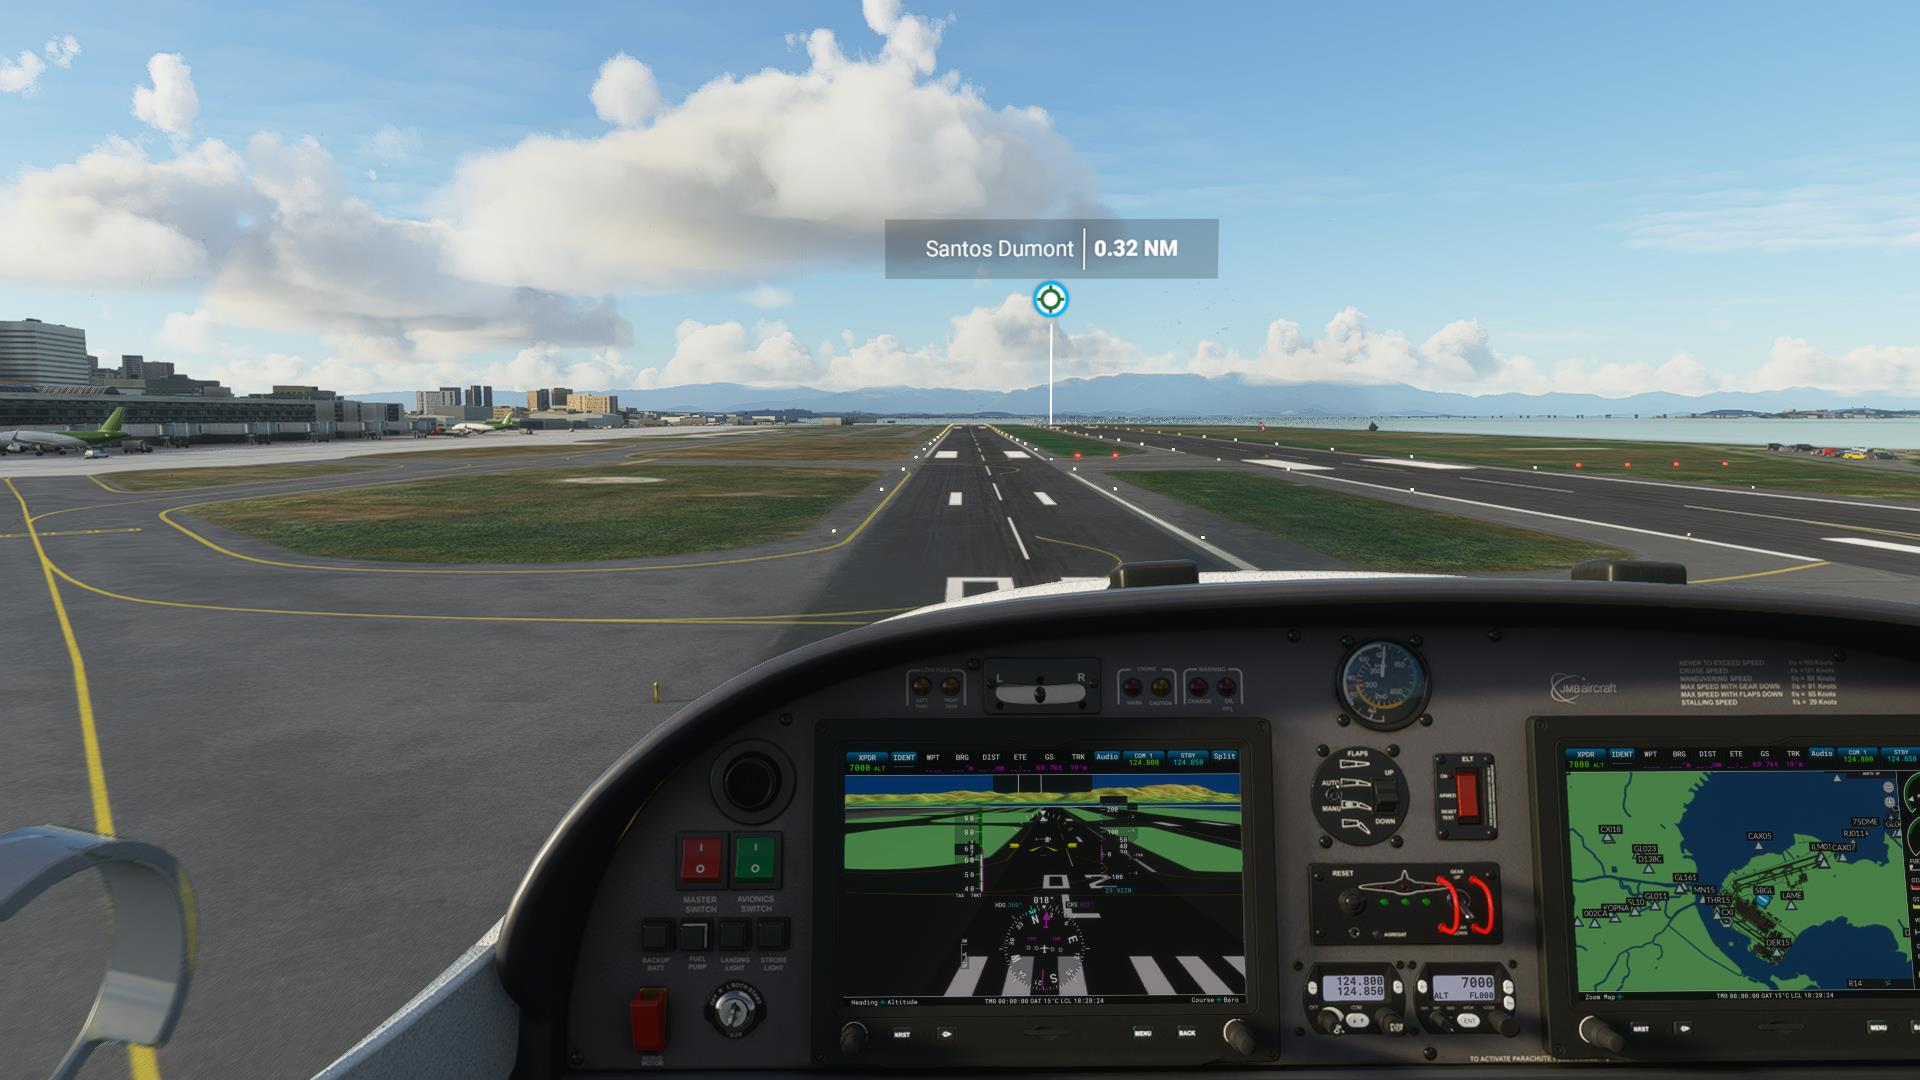 https://vivendobyte.blob.core.windows.net/57793/Microsoft Flight Simulator 13_01_2021 20_06_22.jpg